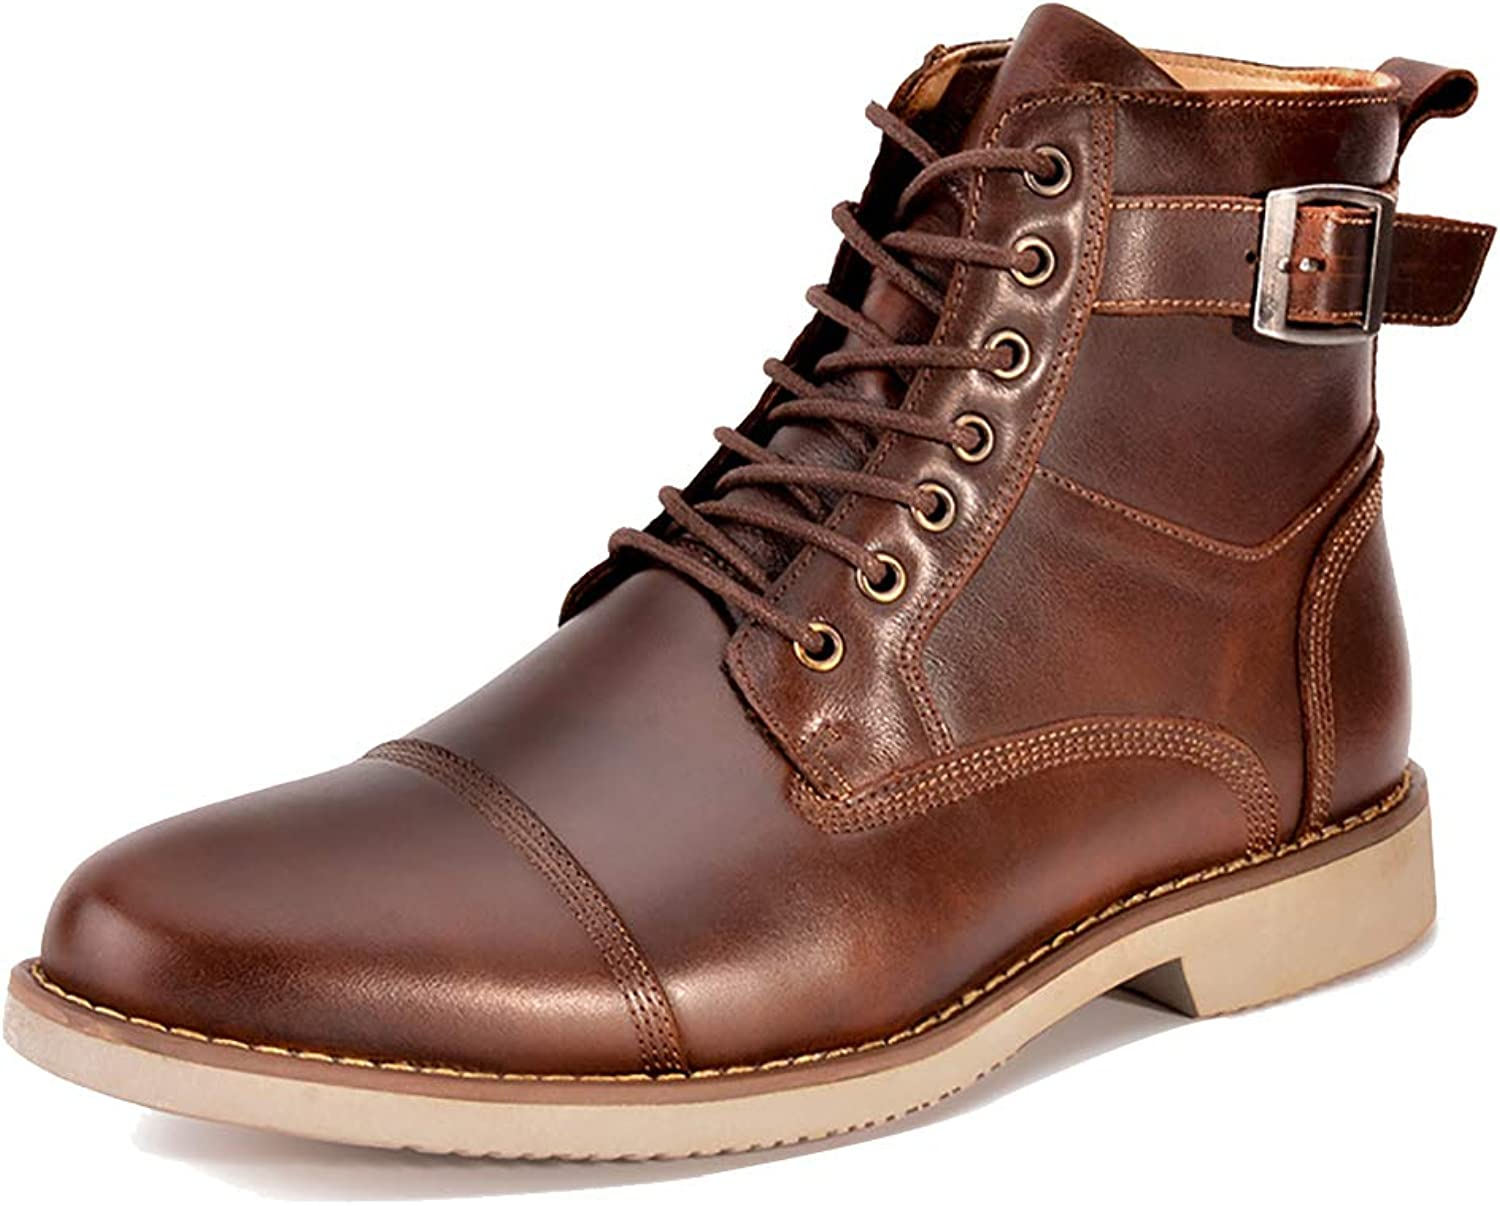 Men's High-top shoes Dr Martens Unisex Adults' Boots Casual Leather Cowboy Boot Lace-ups Work & Safety Boots